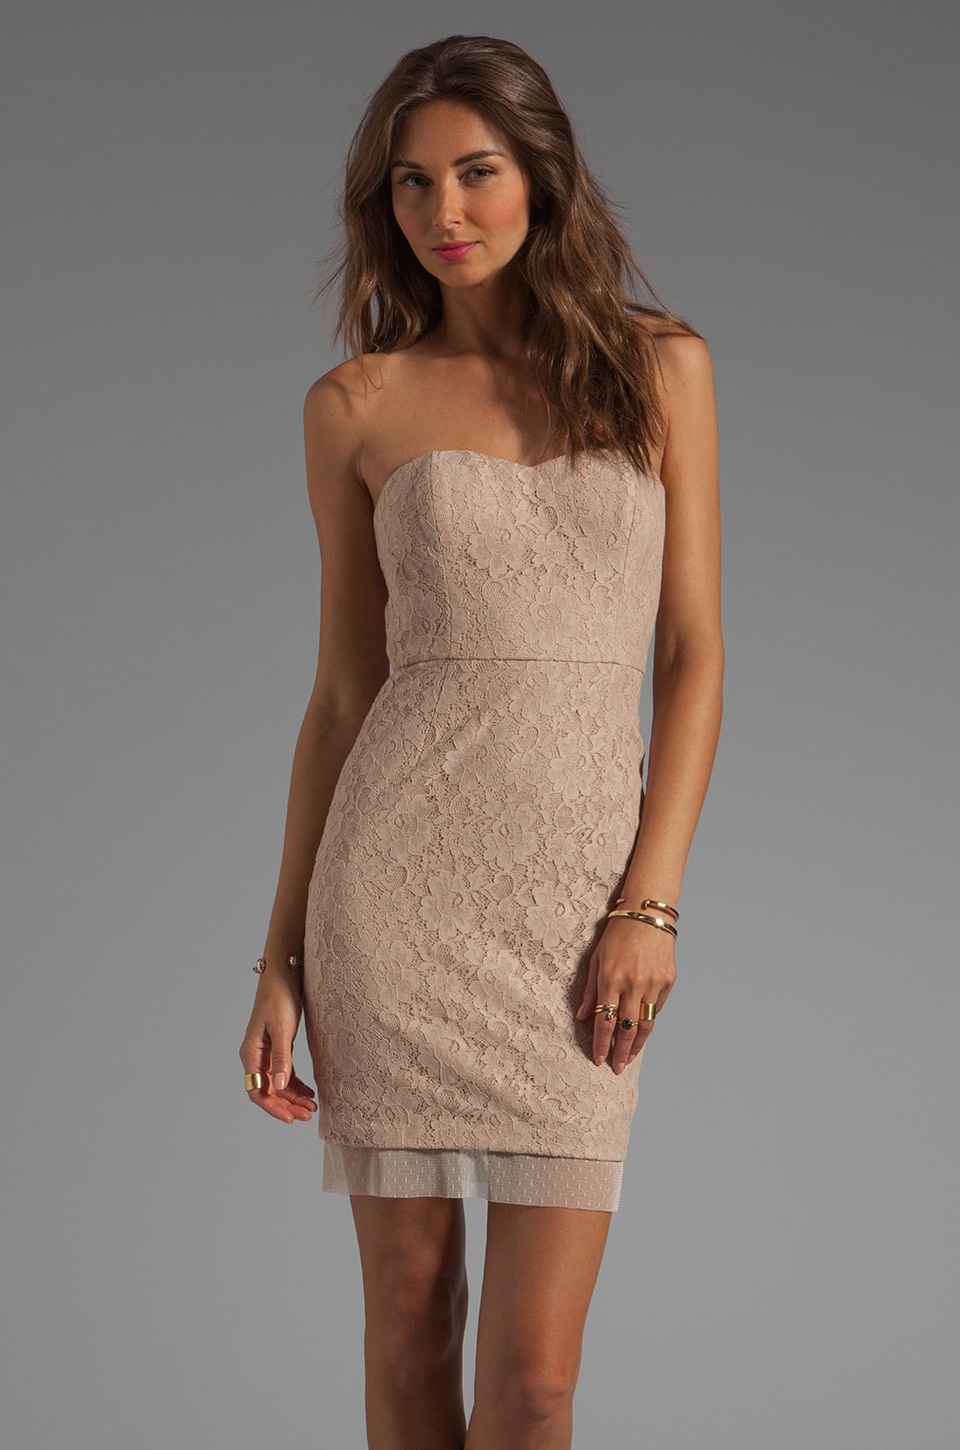 BCBGMAXAZRIA Strapless Dress in Allure